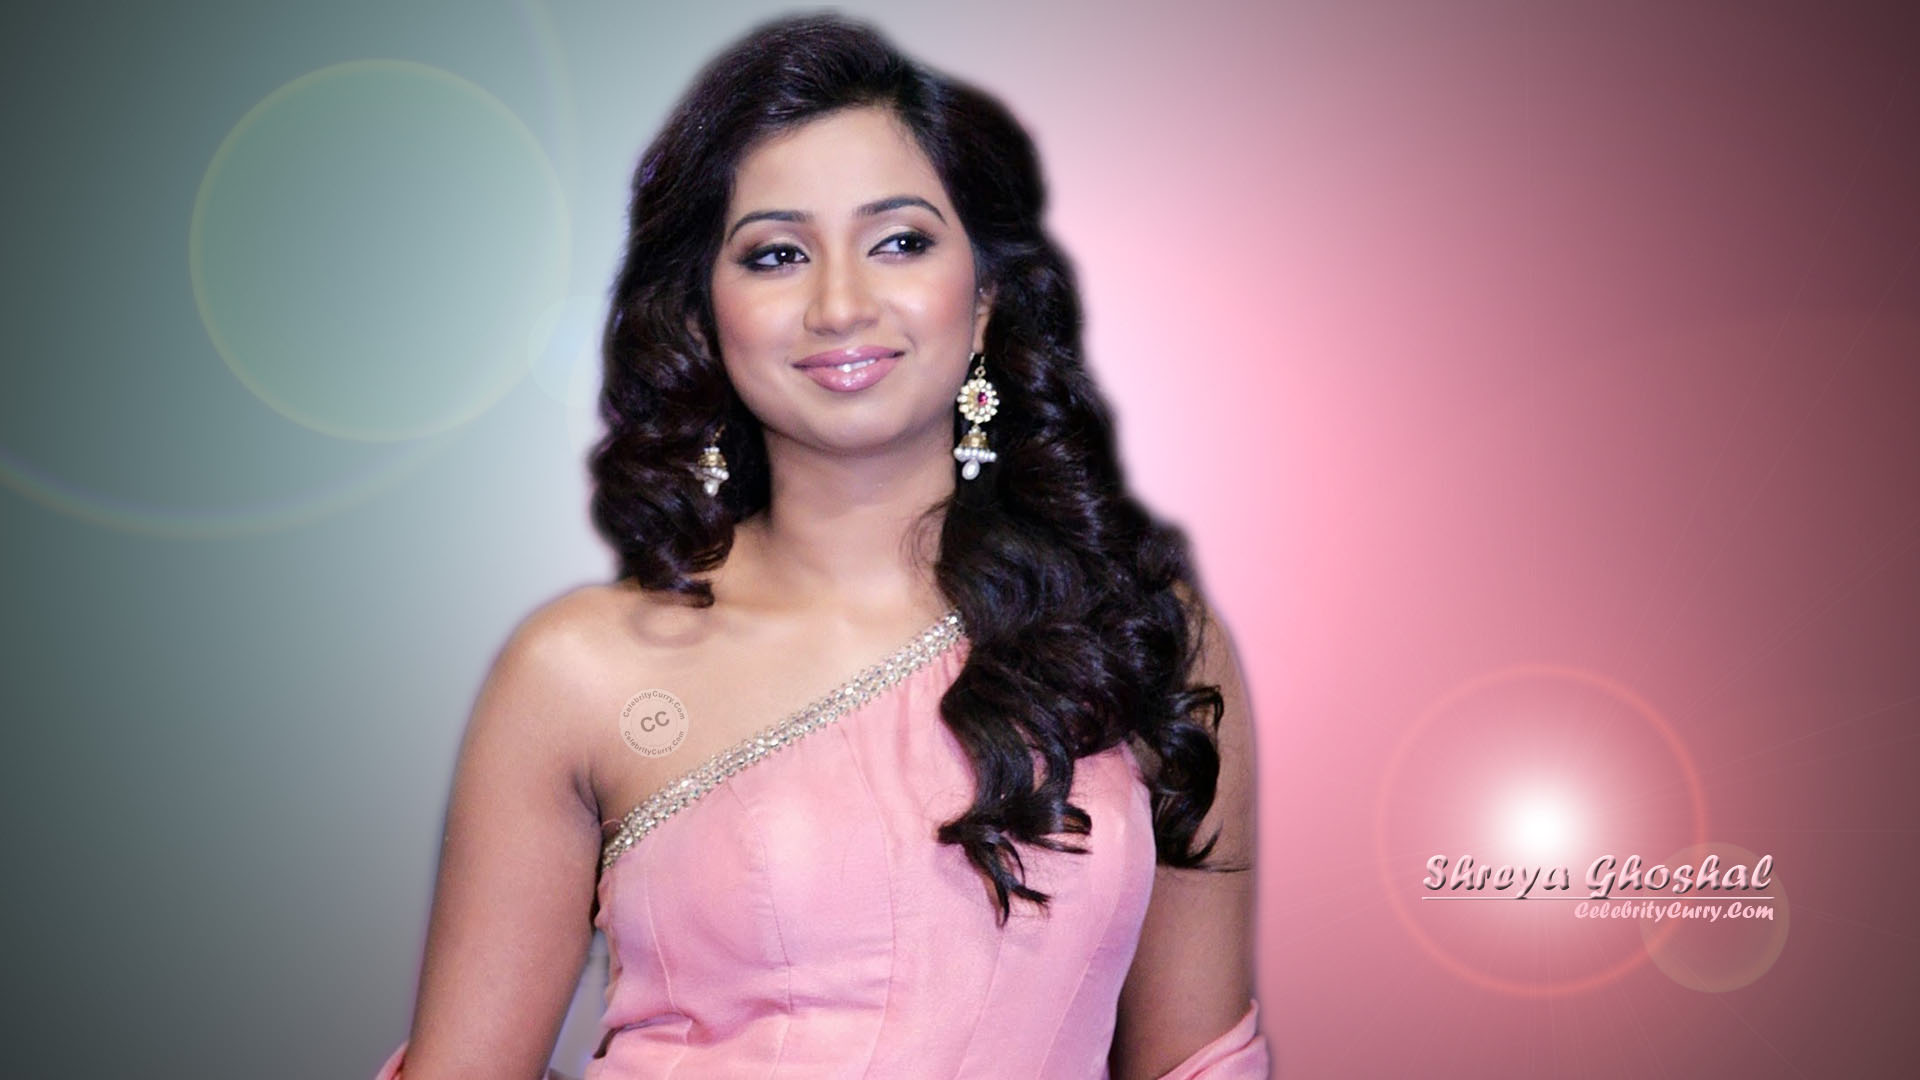 Download Shreya Ghoshal Images Wallpapers Gallery